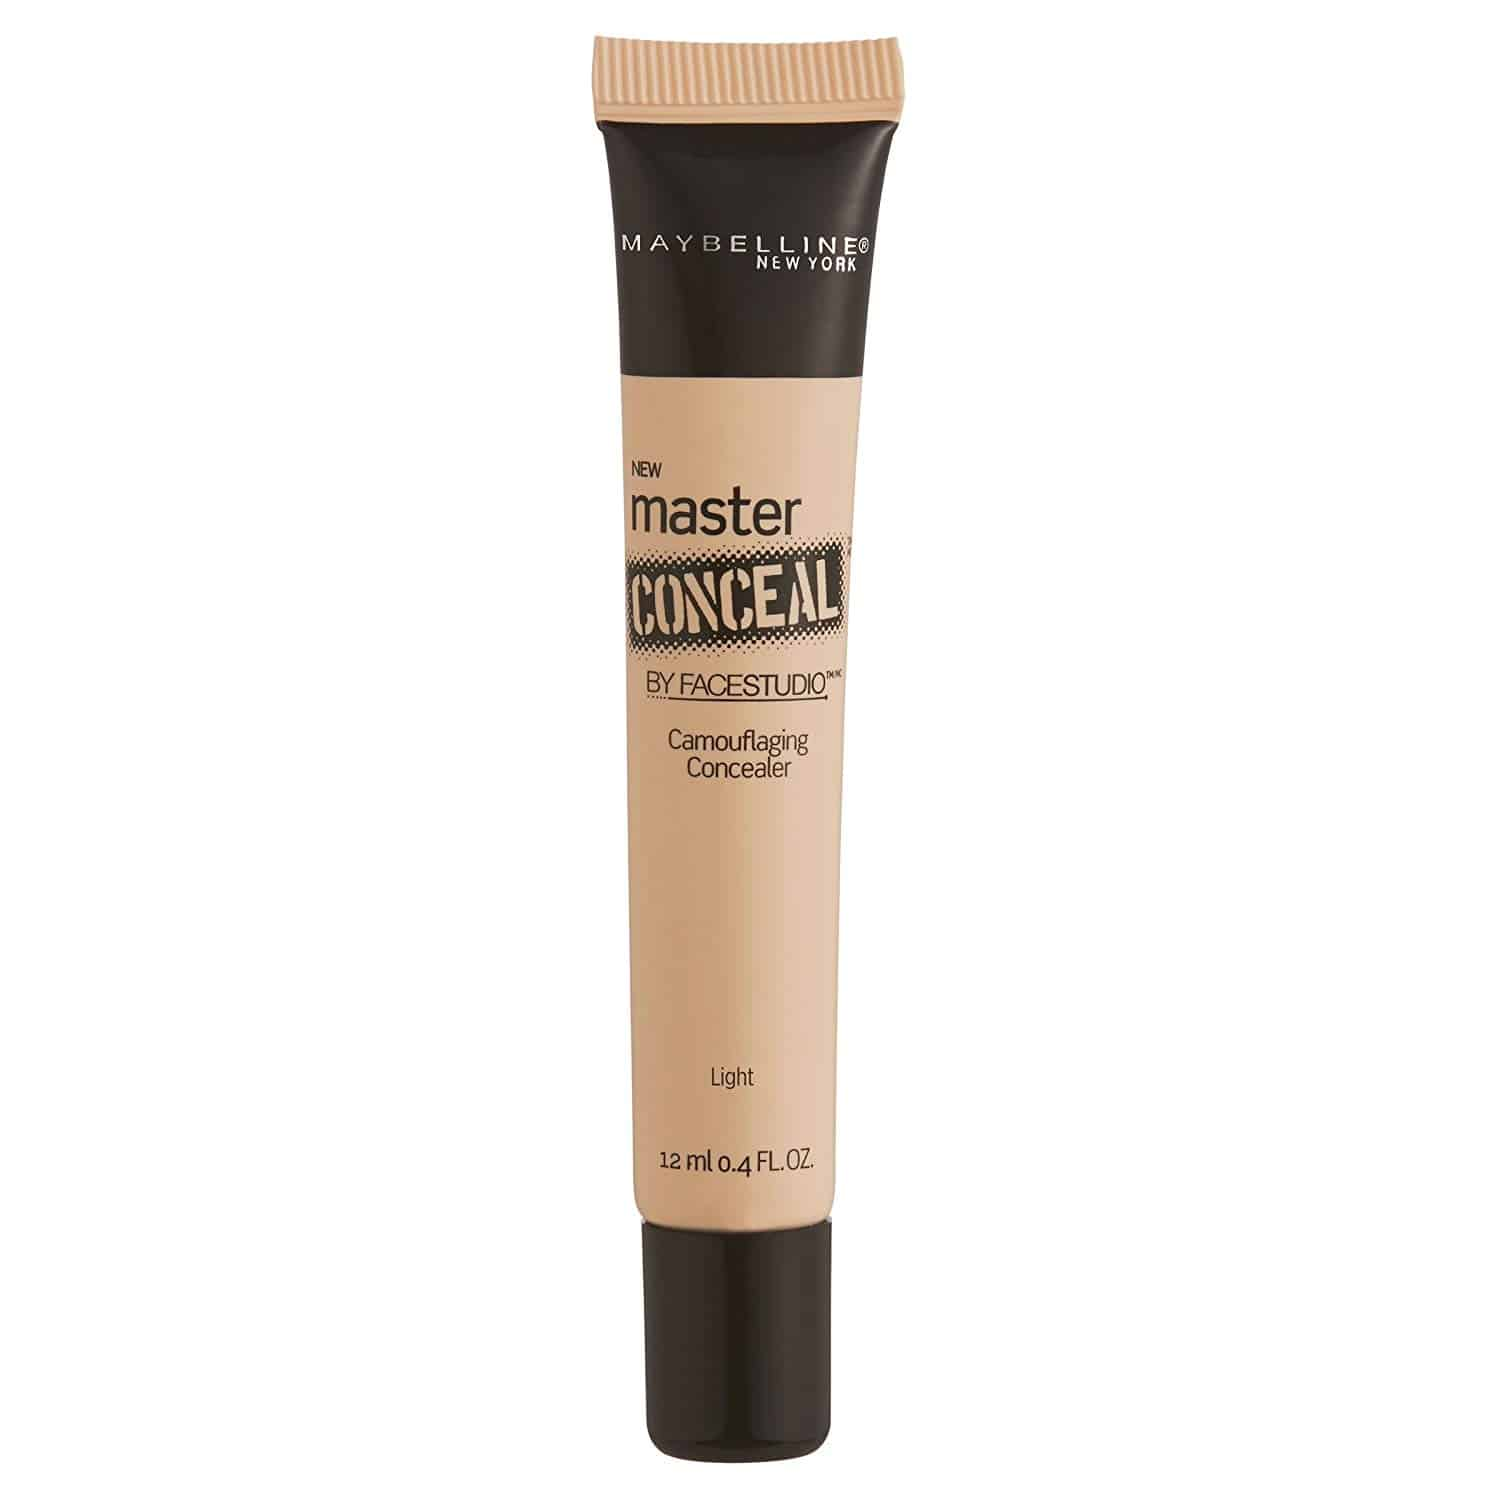 Maybelline New York Facestudio Master Conceal Makeup 1